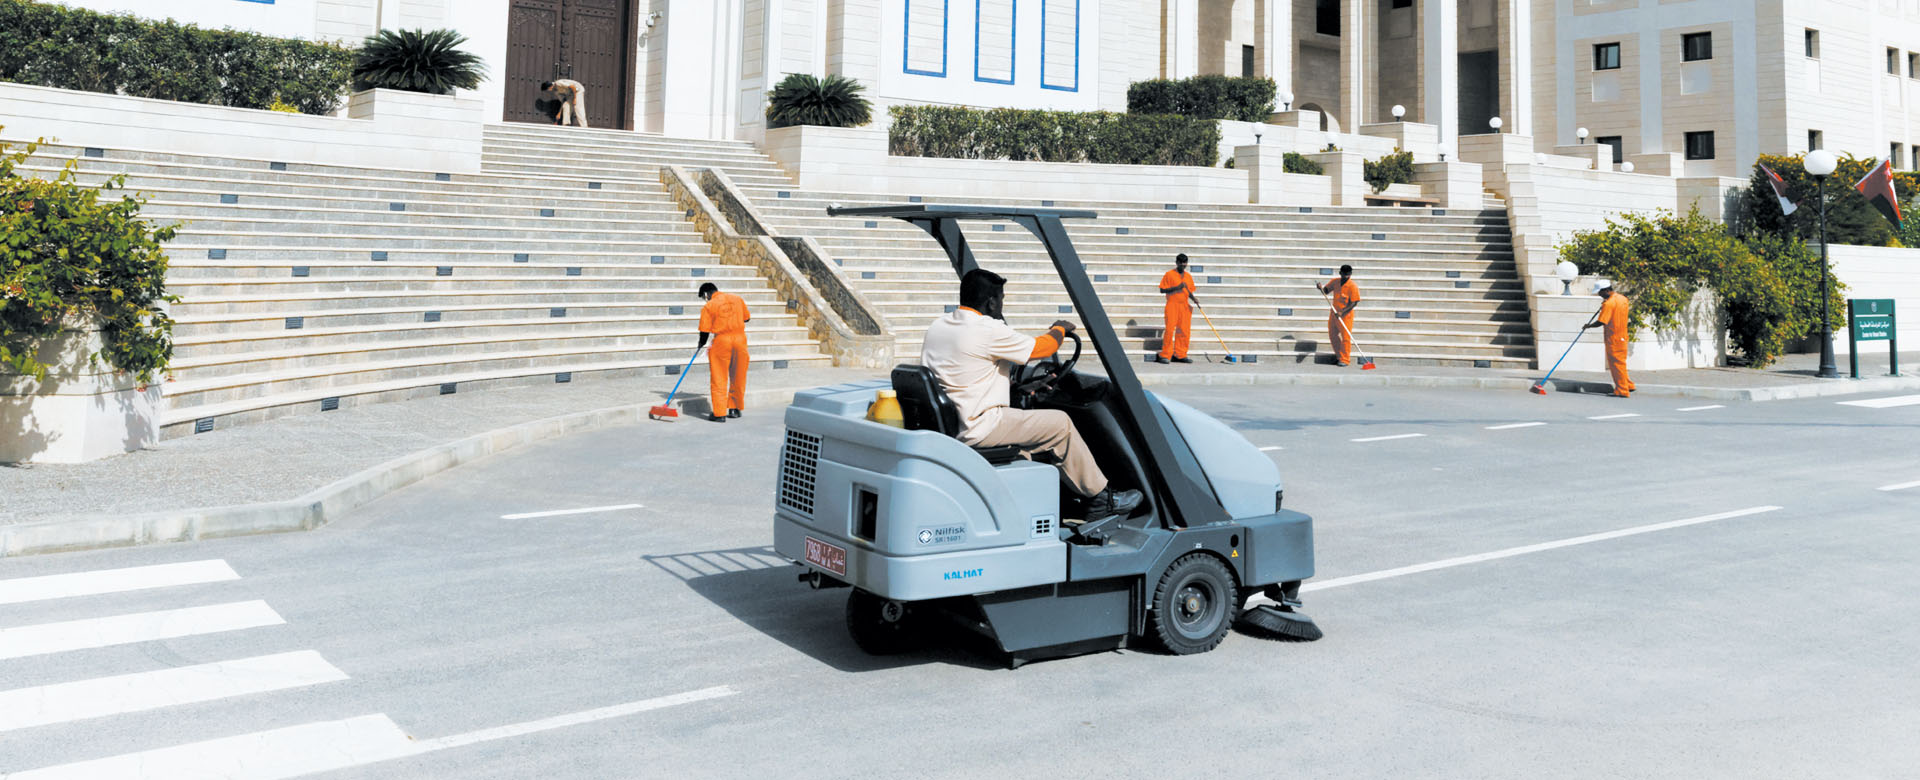 MECHANIZED CLEANING